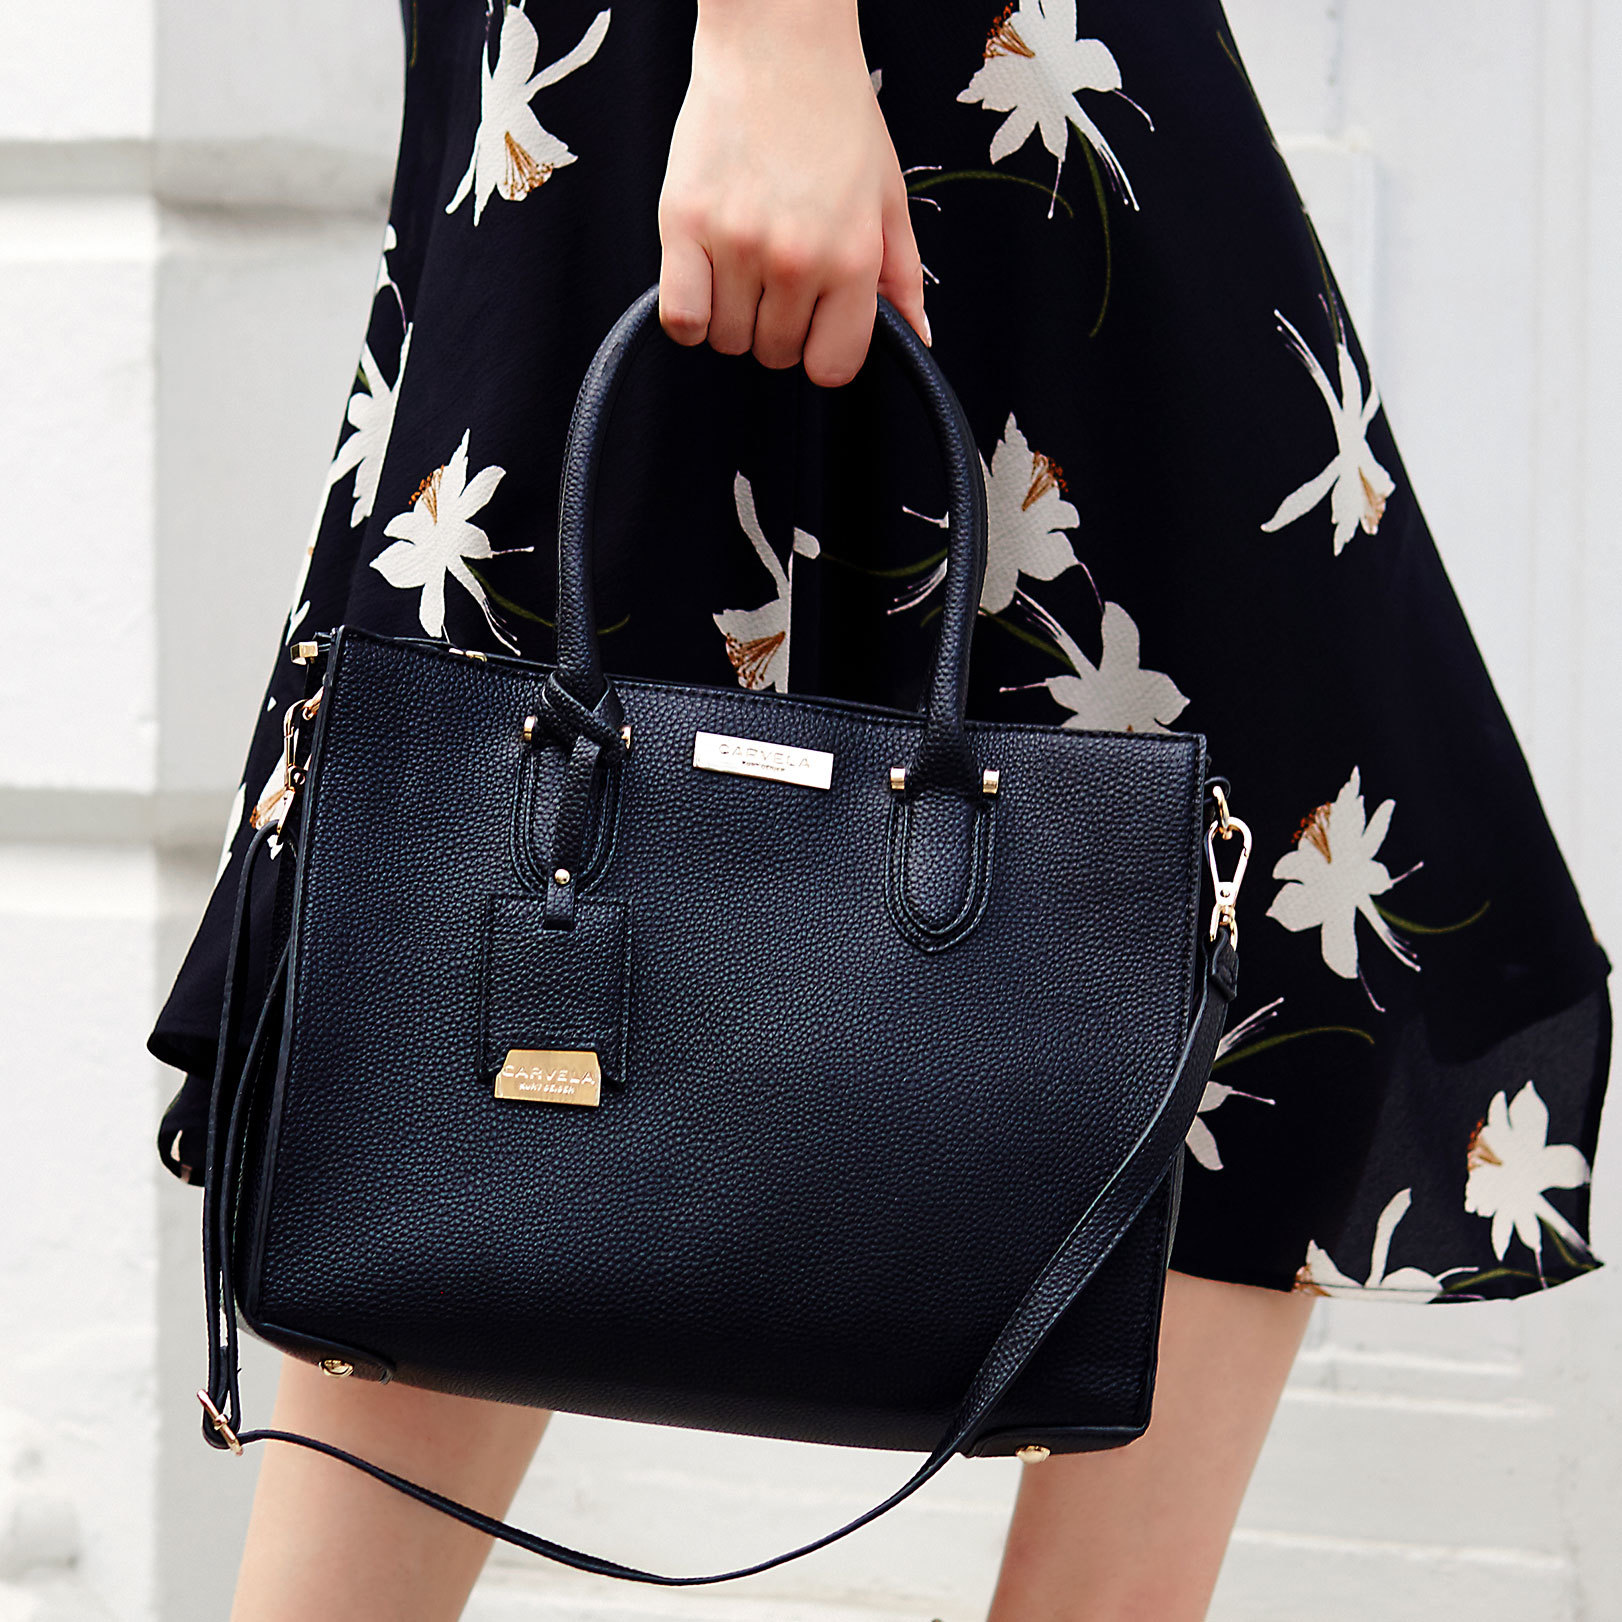 6adb89e54ac0 ROBYN STRUCTURED TOTE Carvela Robyn Black Tote by CARVELA